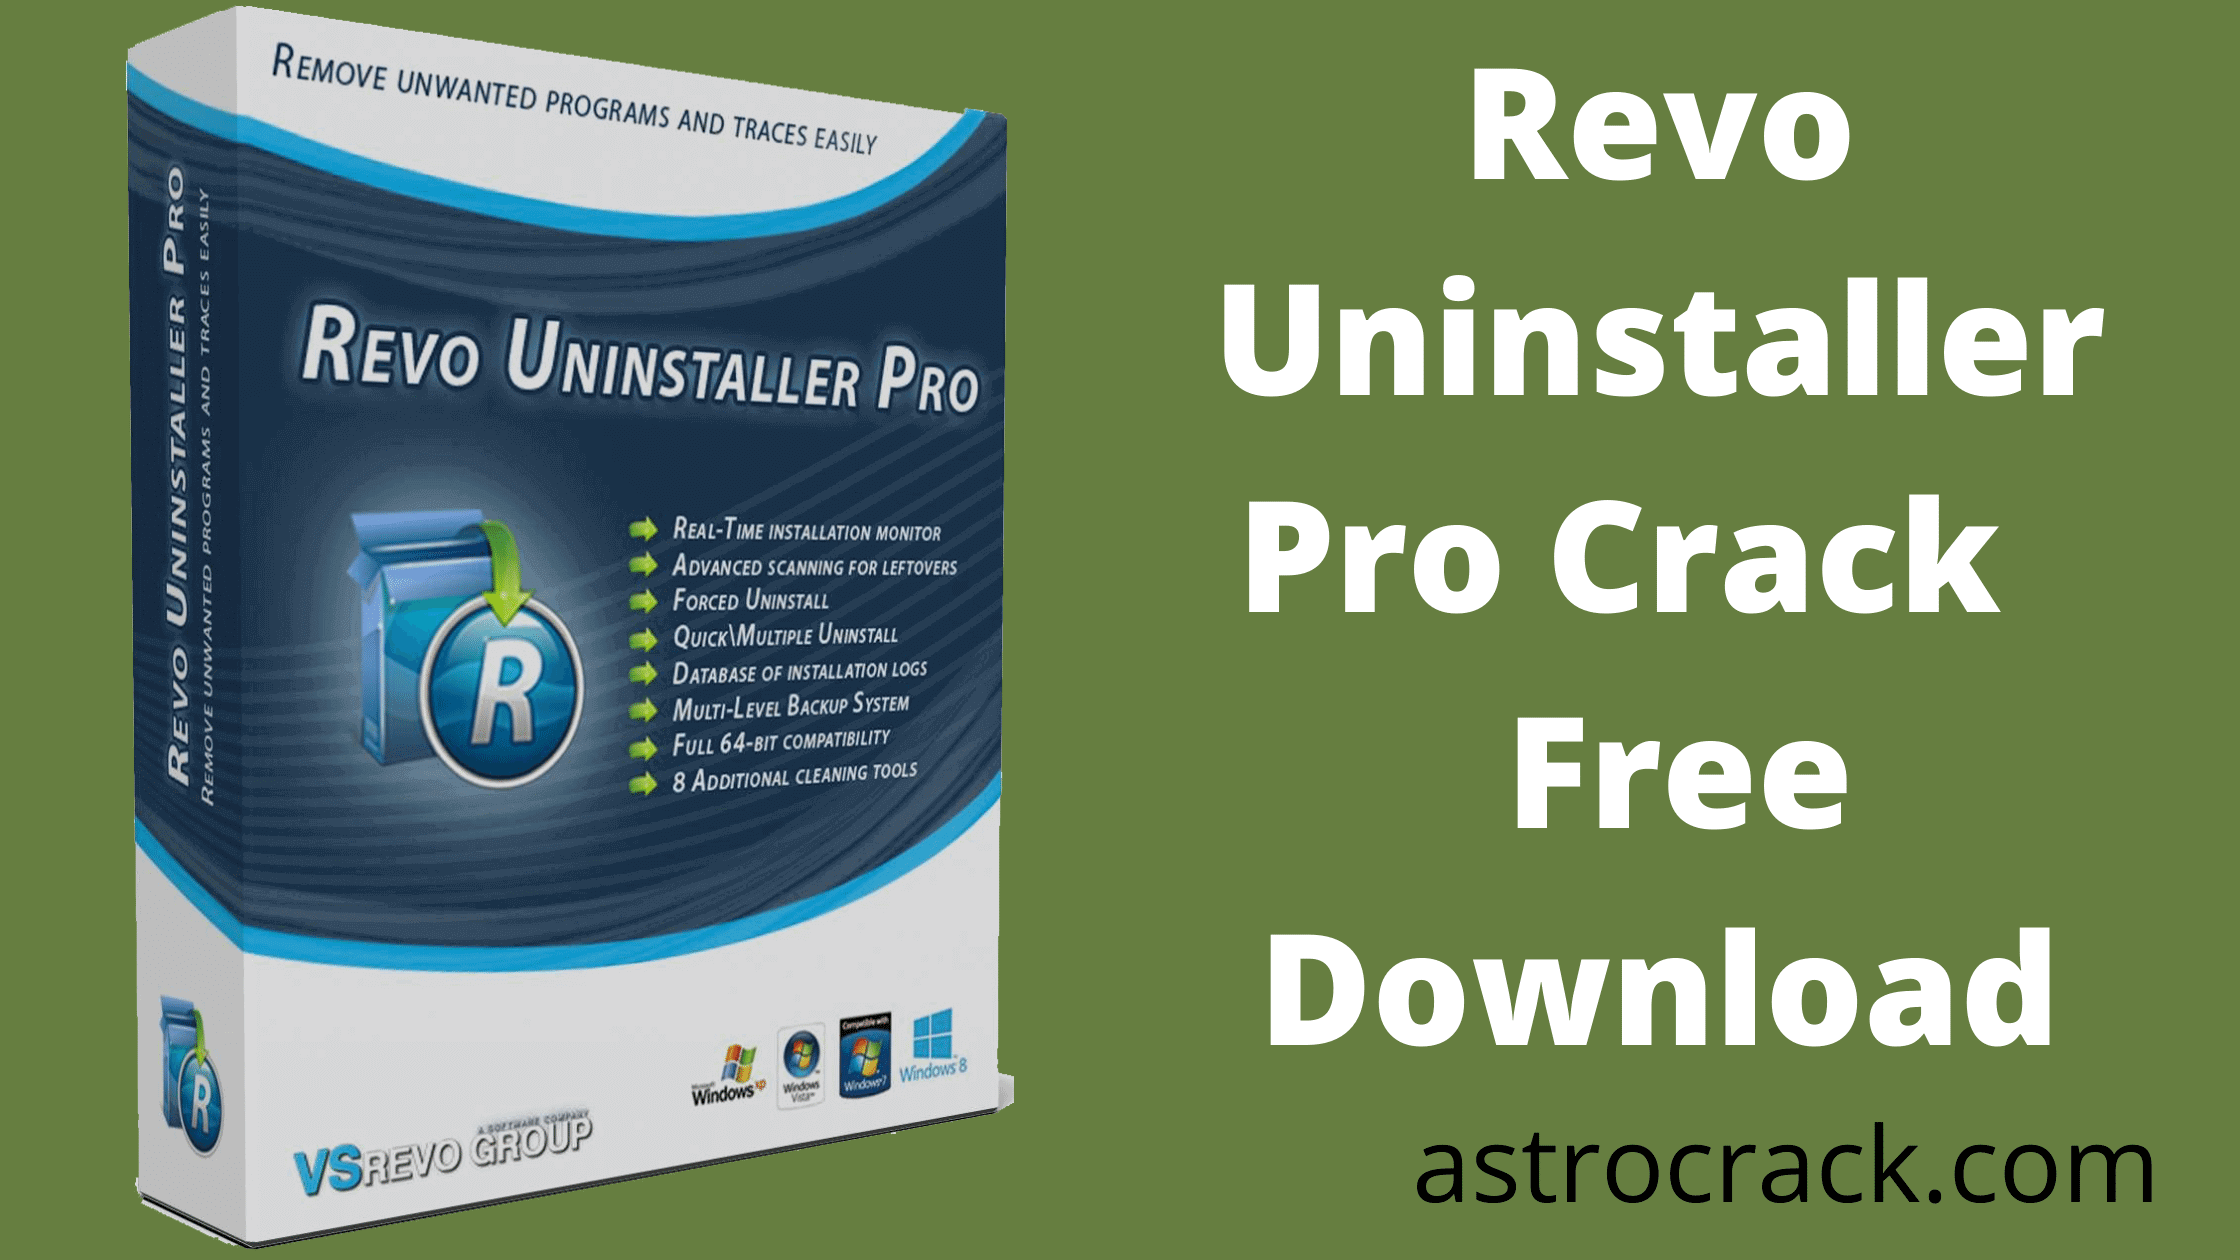 Revo Uninstaller, Revo Uninstaller crack, Revo Uninstaller crack download, Revo Uninstaller Crack patched, Revo Uninstaller download